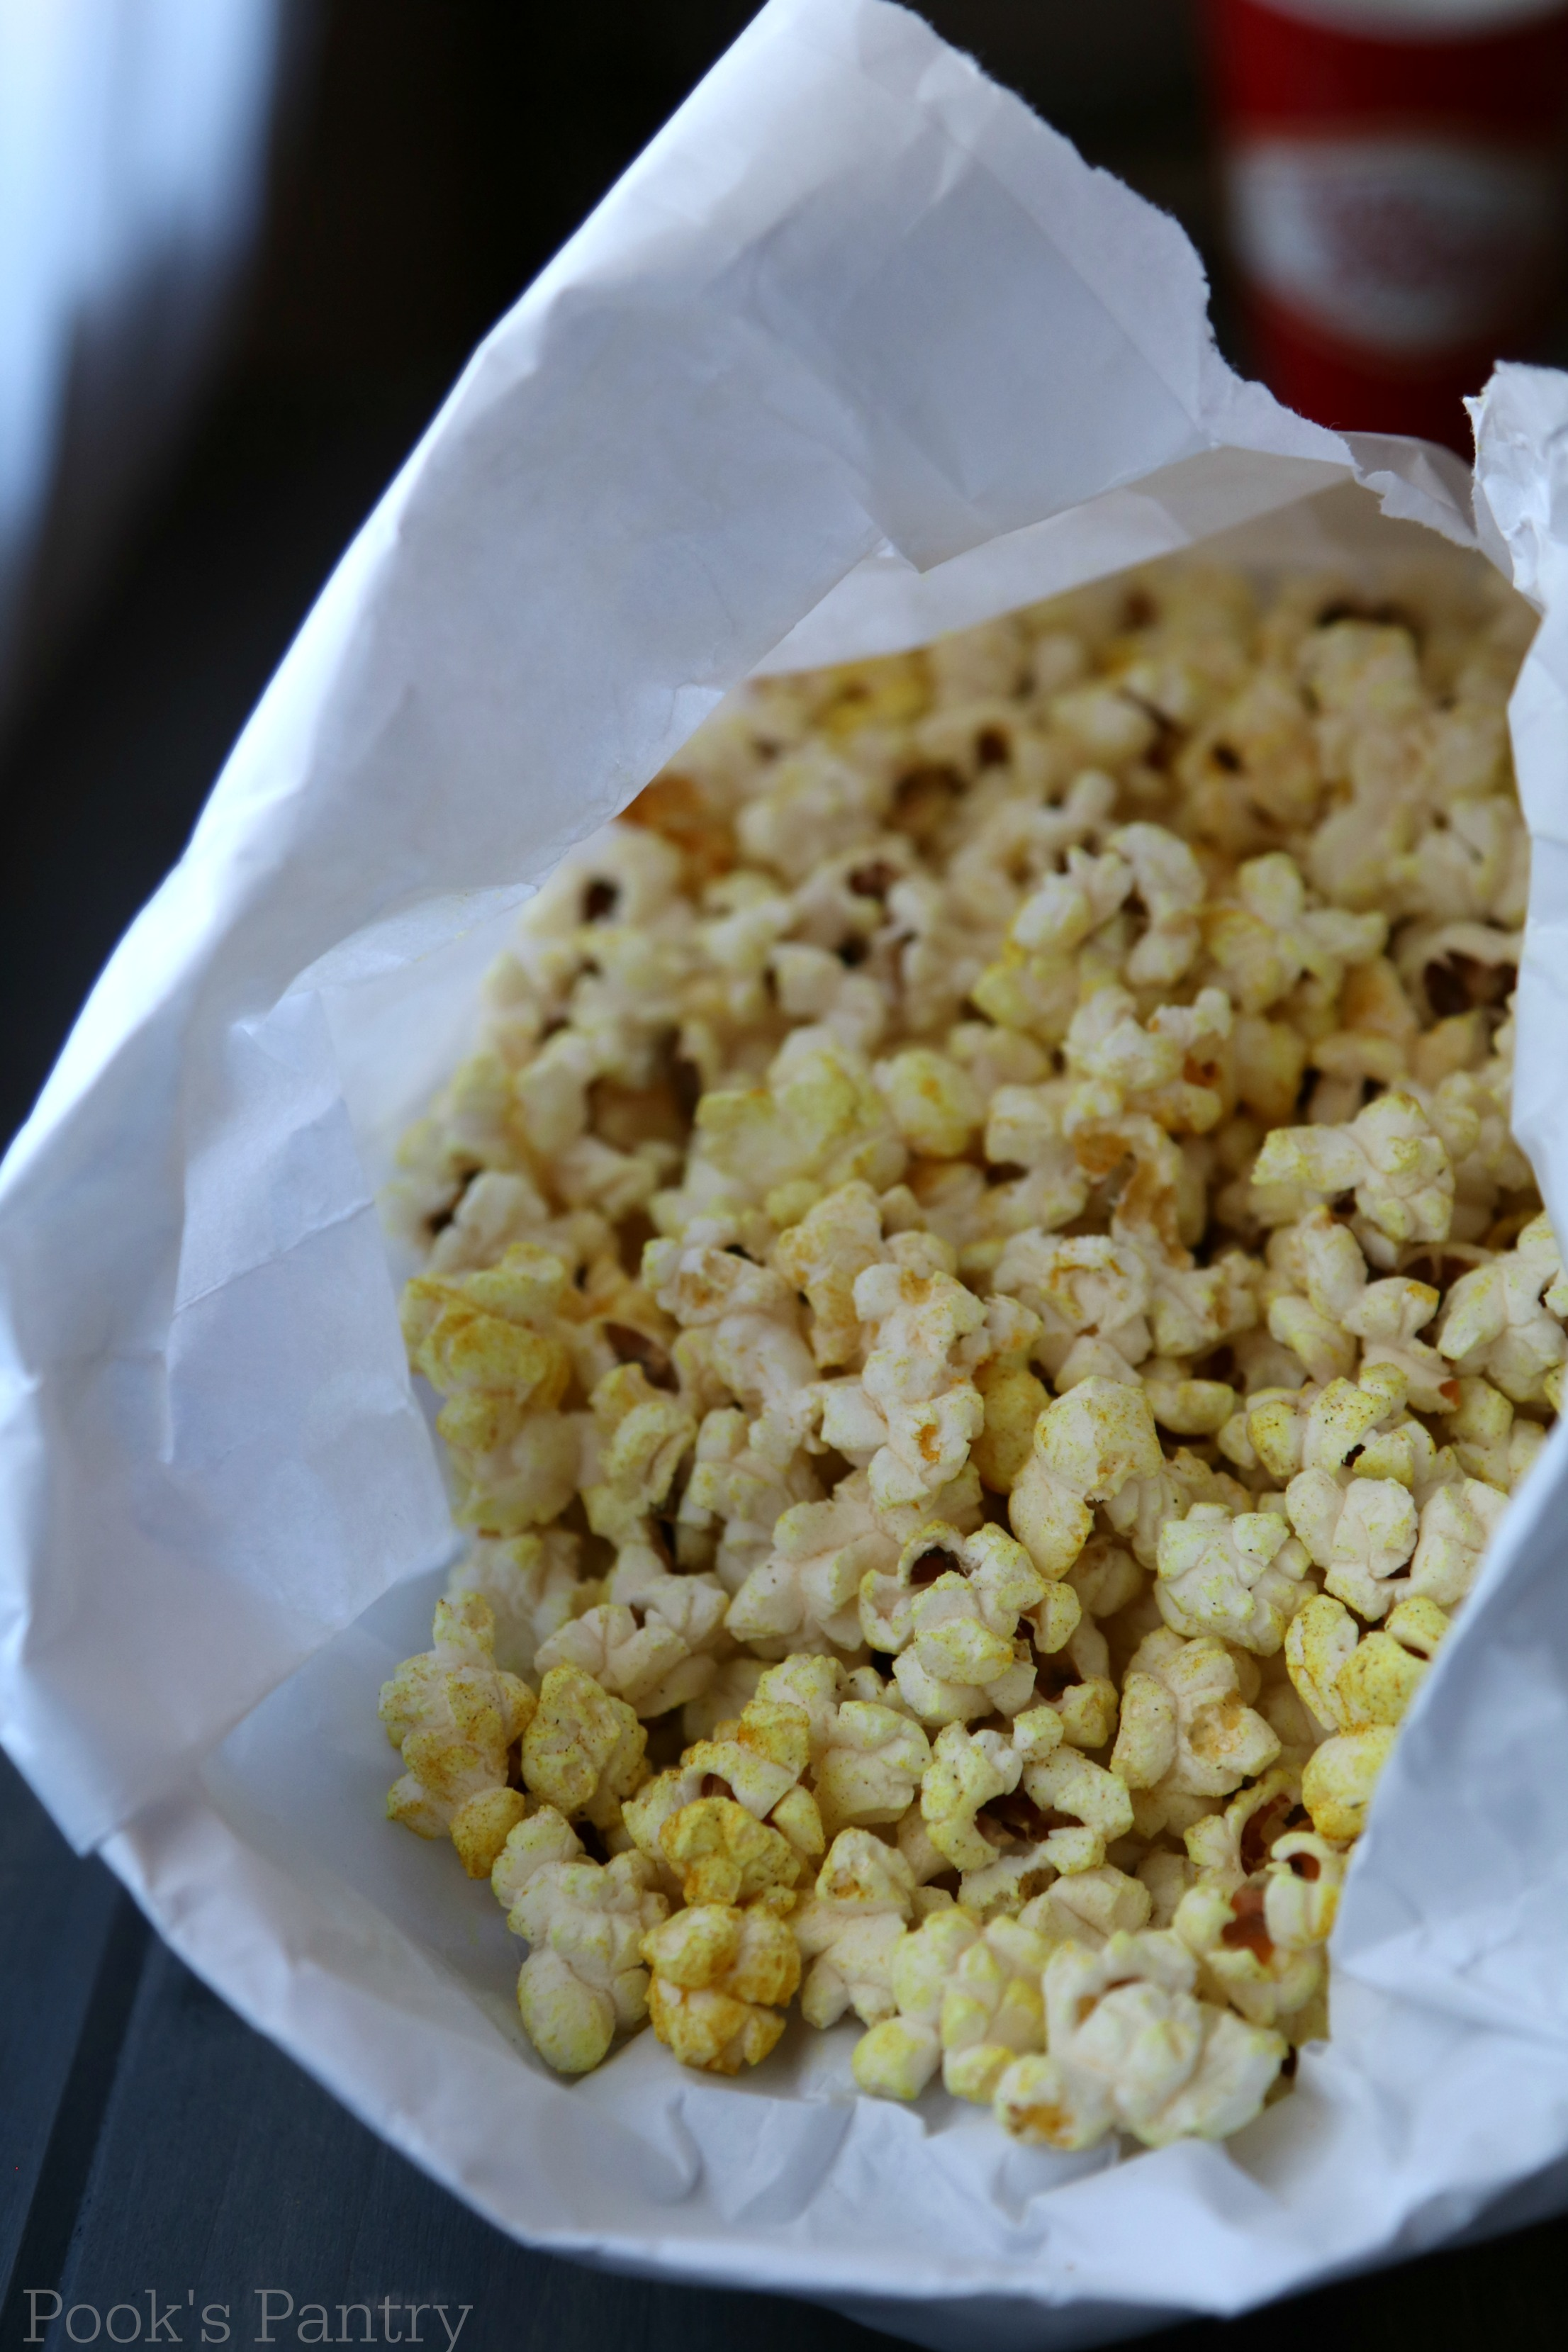 bag of coconut oil popcorn